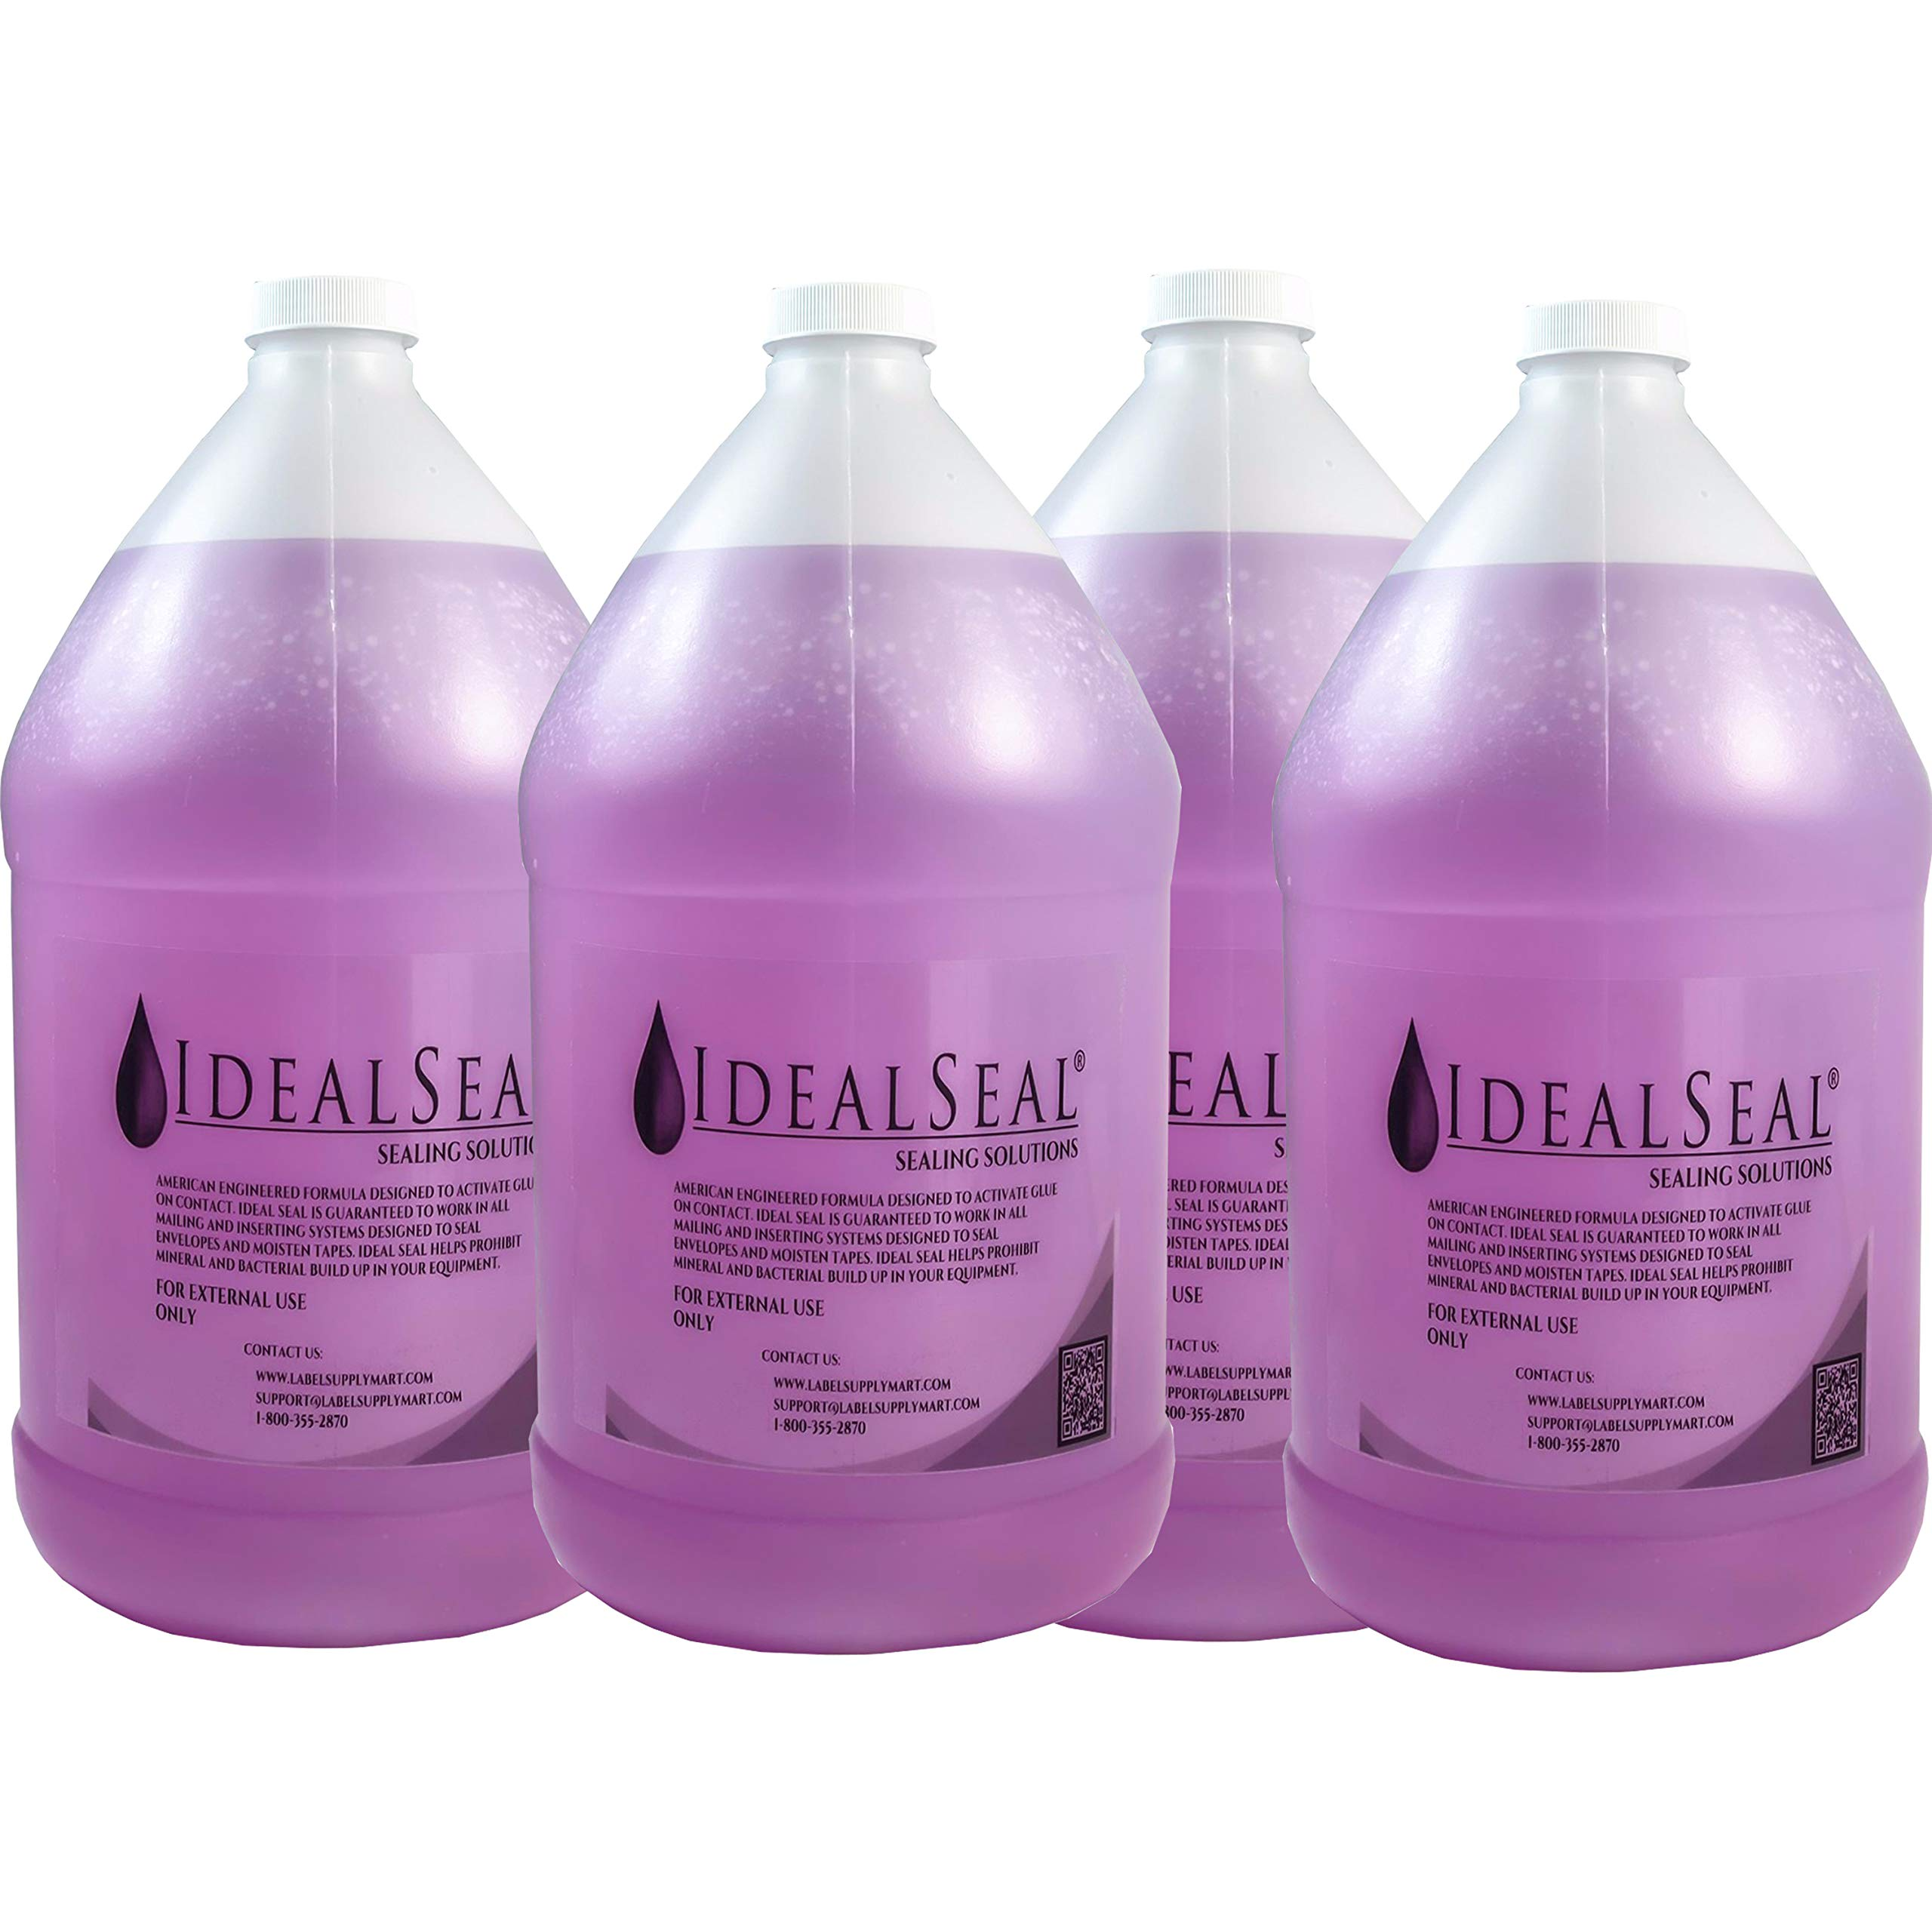 Ideal Seal One Gallon of Sealing Solution DM Series Mailing Systems (4-Gallons-Purple) by IDEALSEAL